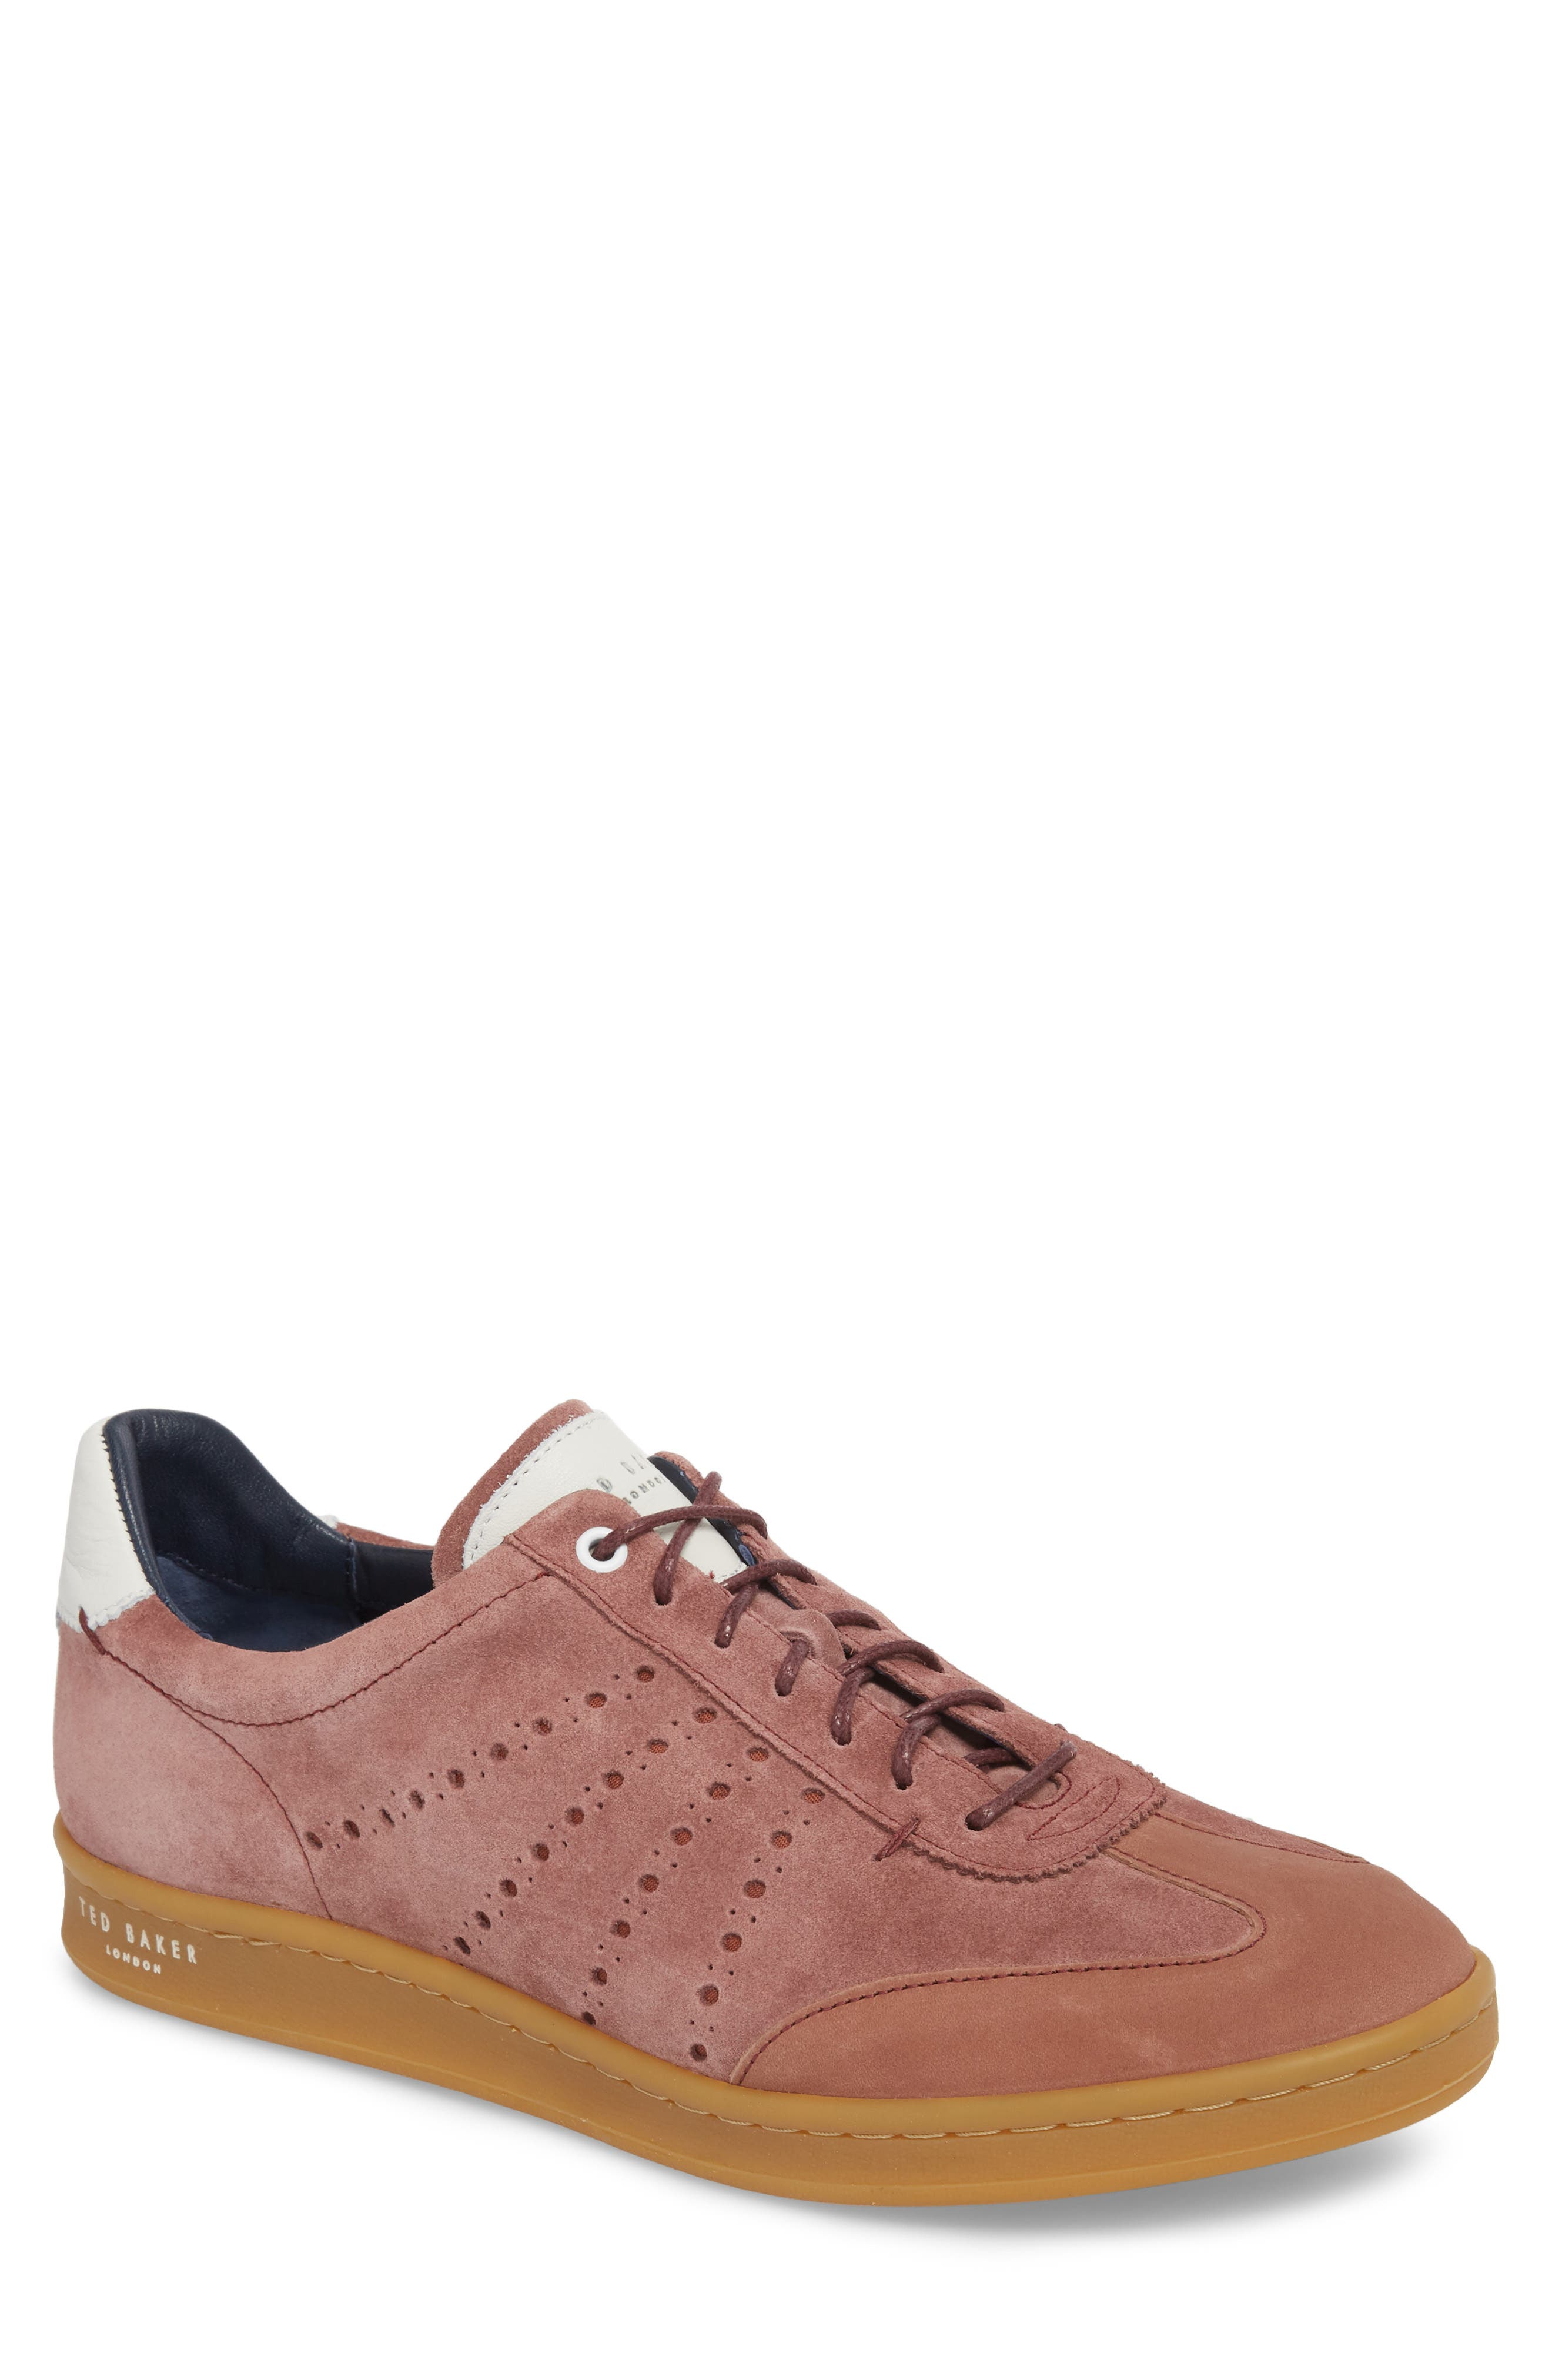 Orlees Low Top Sneaker,                             Main thumbnail 1, color,                             Pink Leather/ Suede